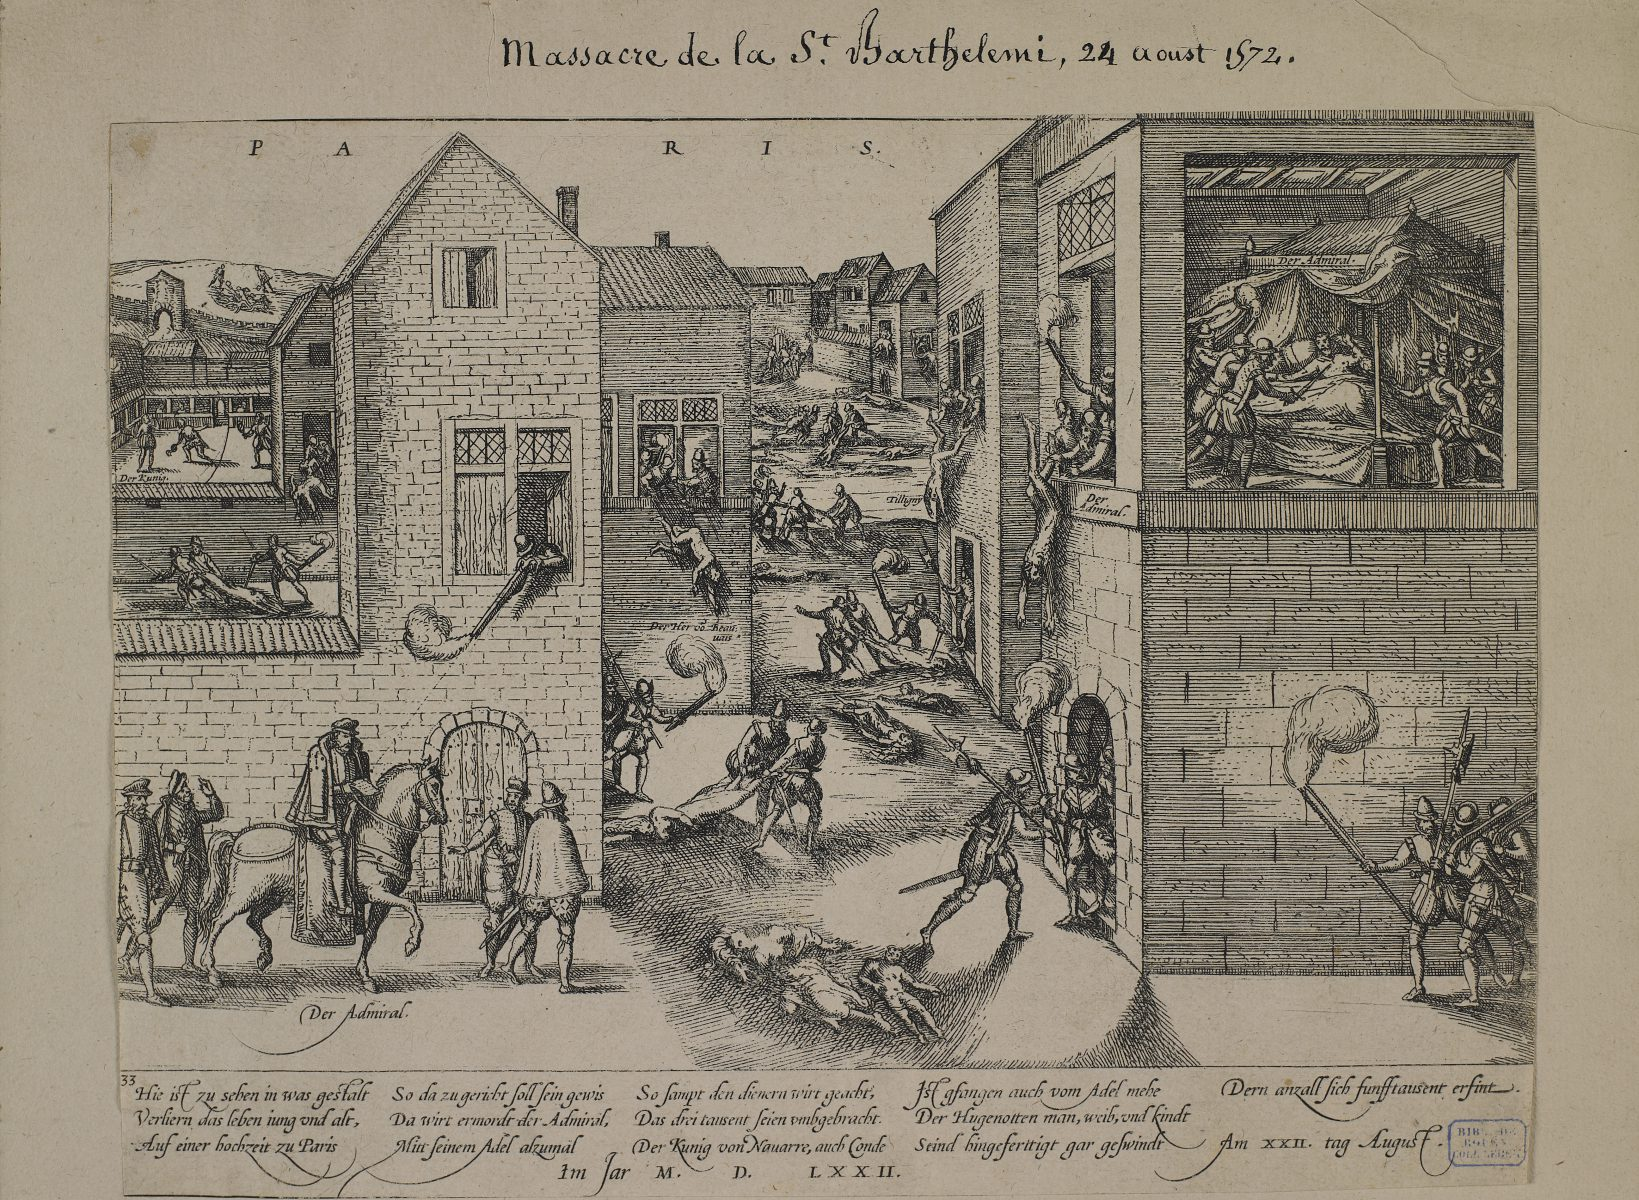 Massacre of Saint-Bartholomew, 24 August 1572